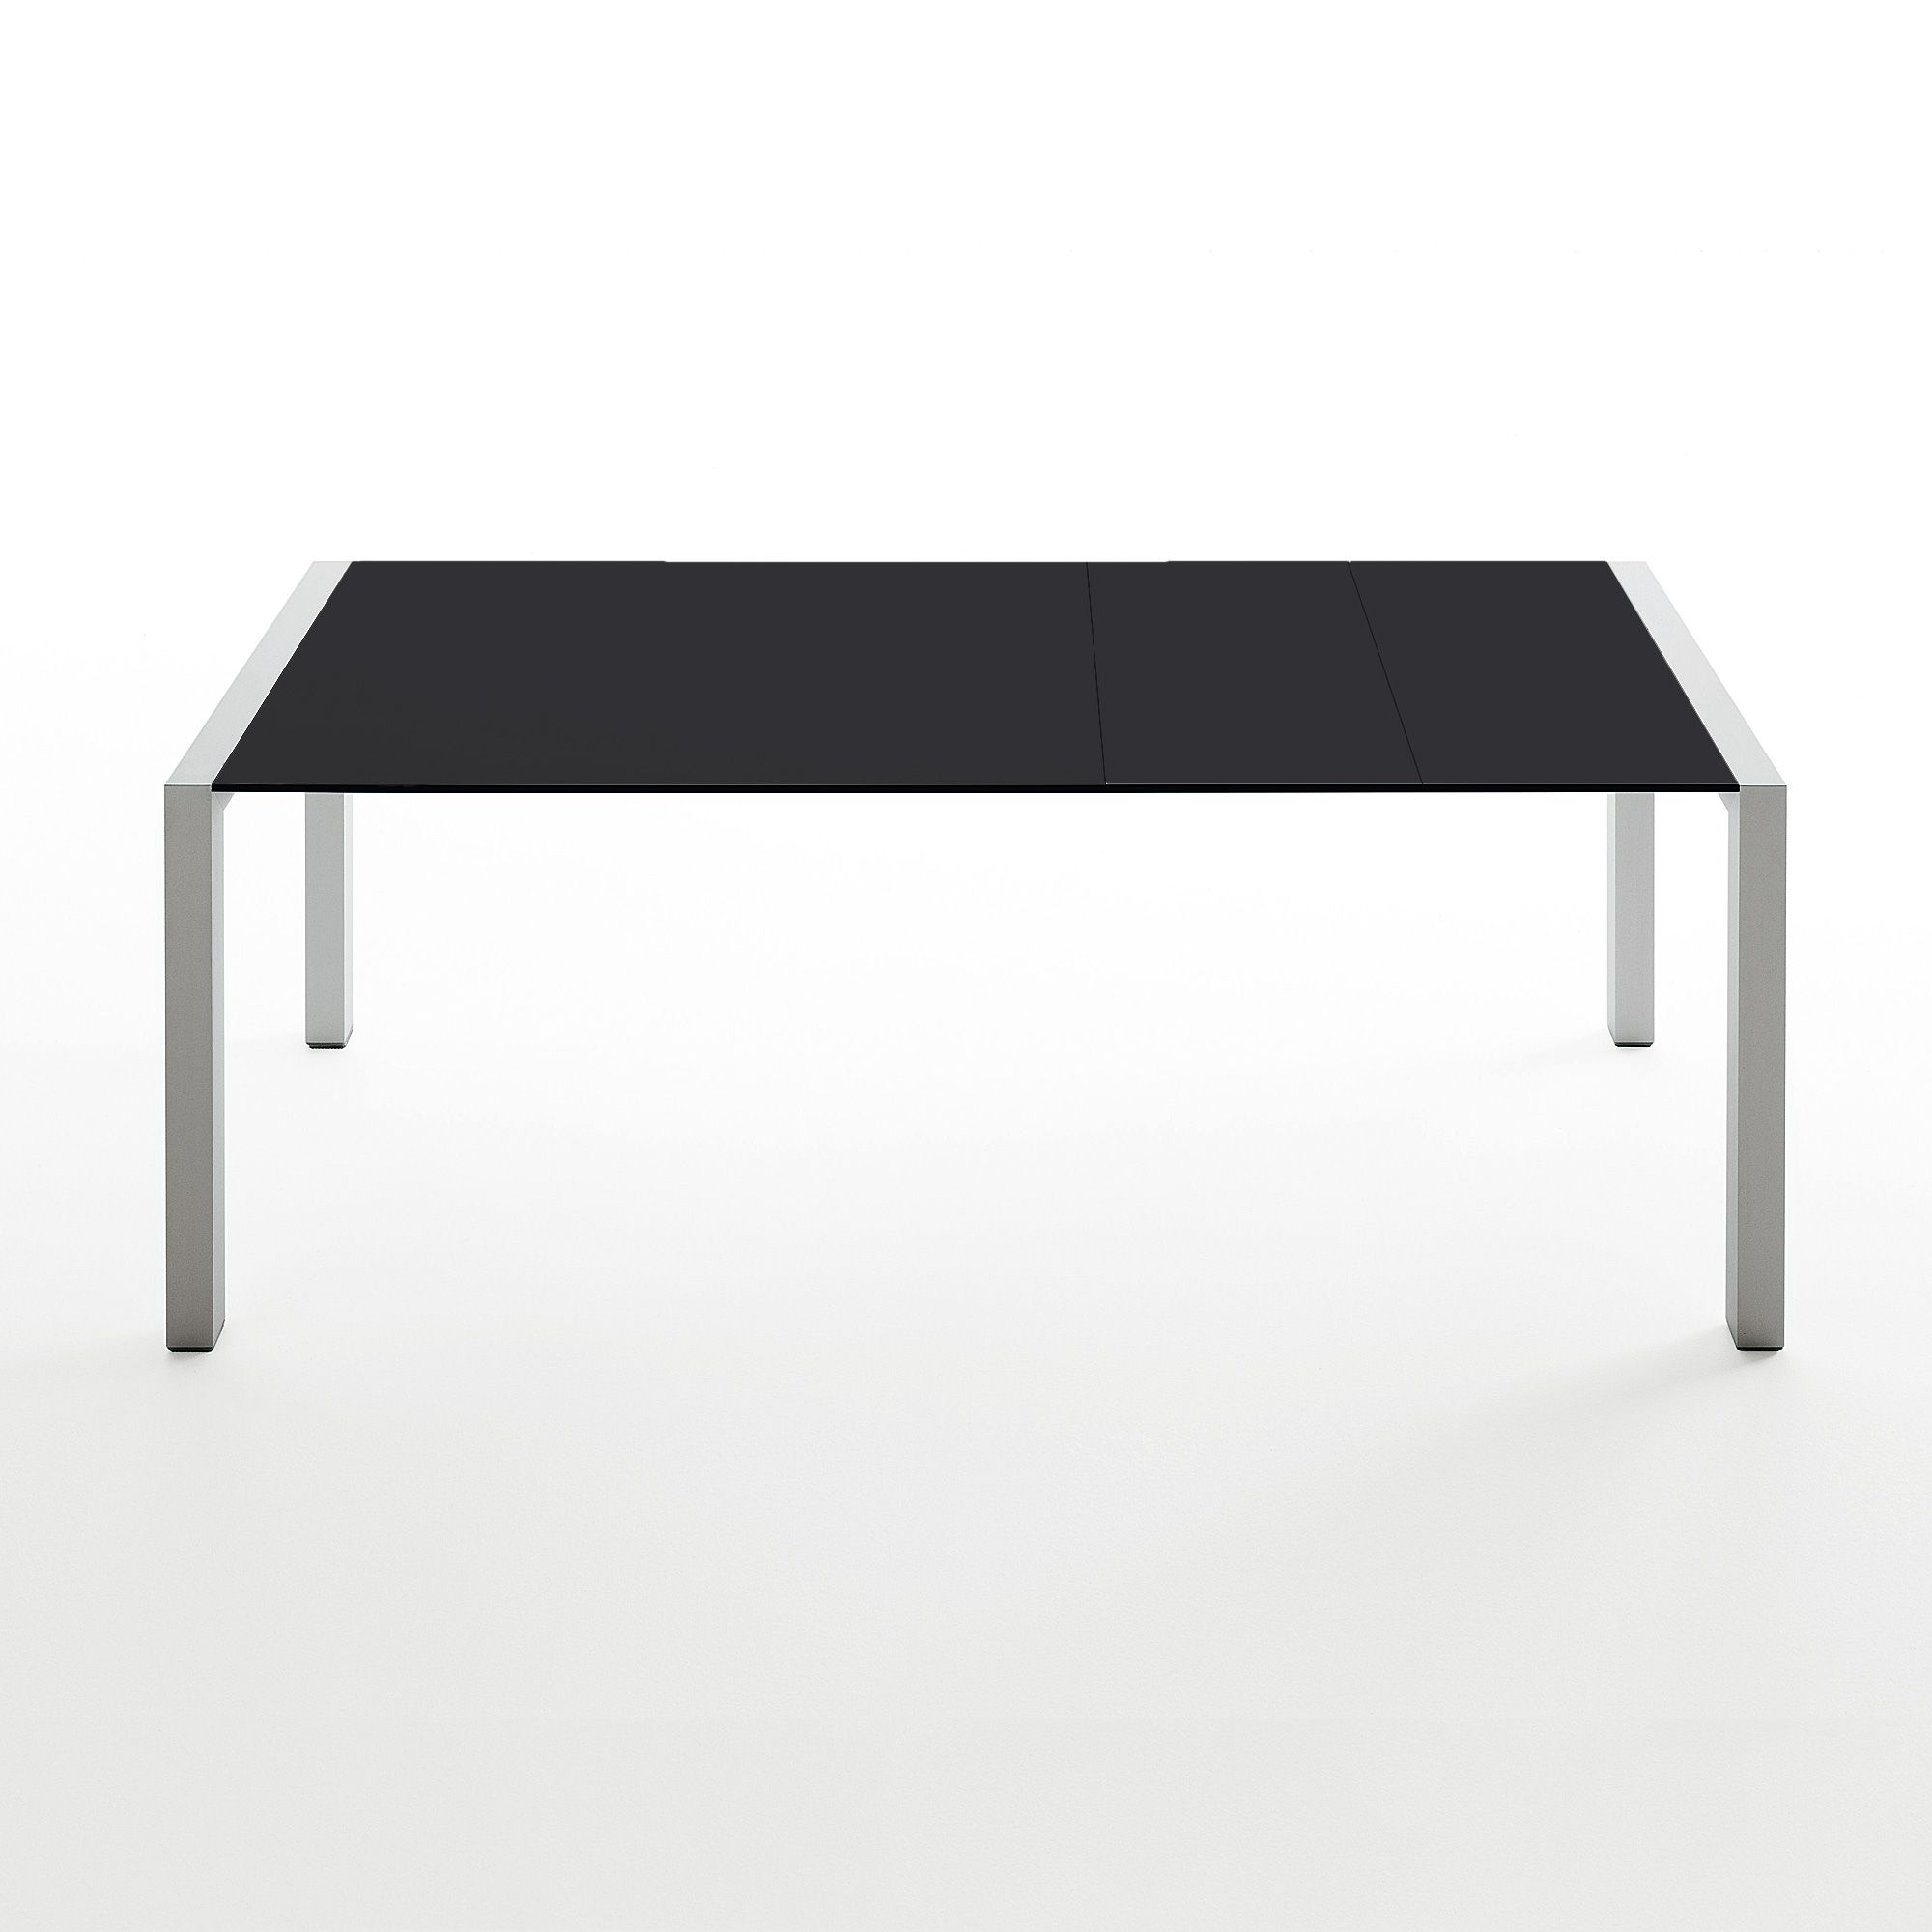 Sushi Table. Matisse. $5k. Suitable for outdoors.